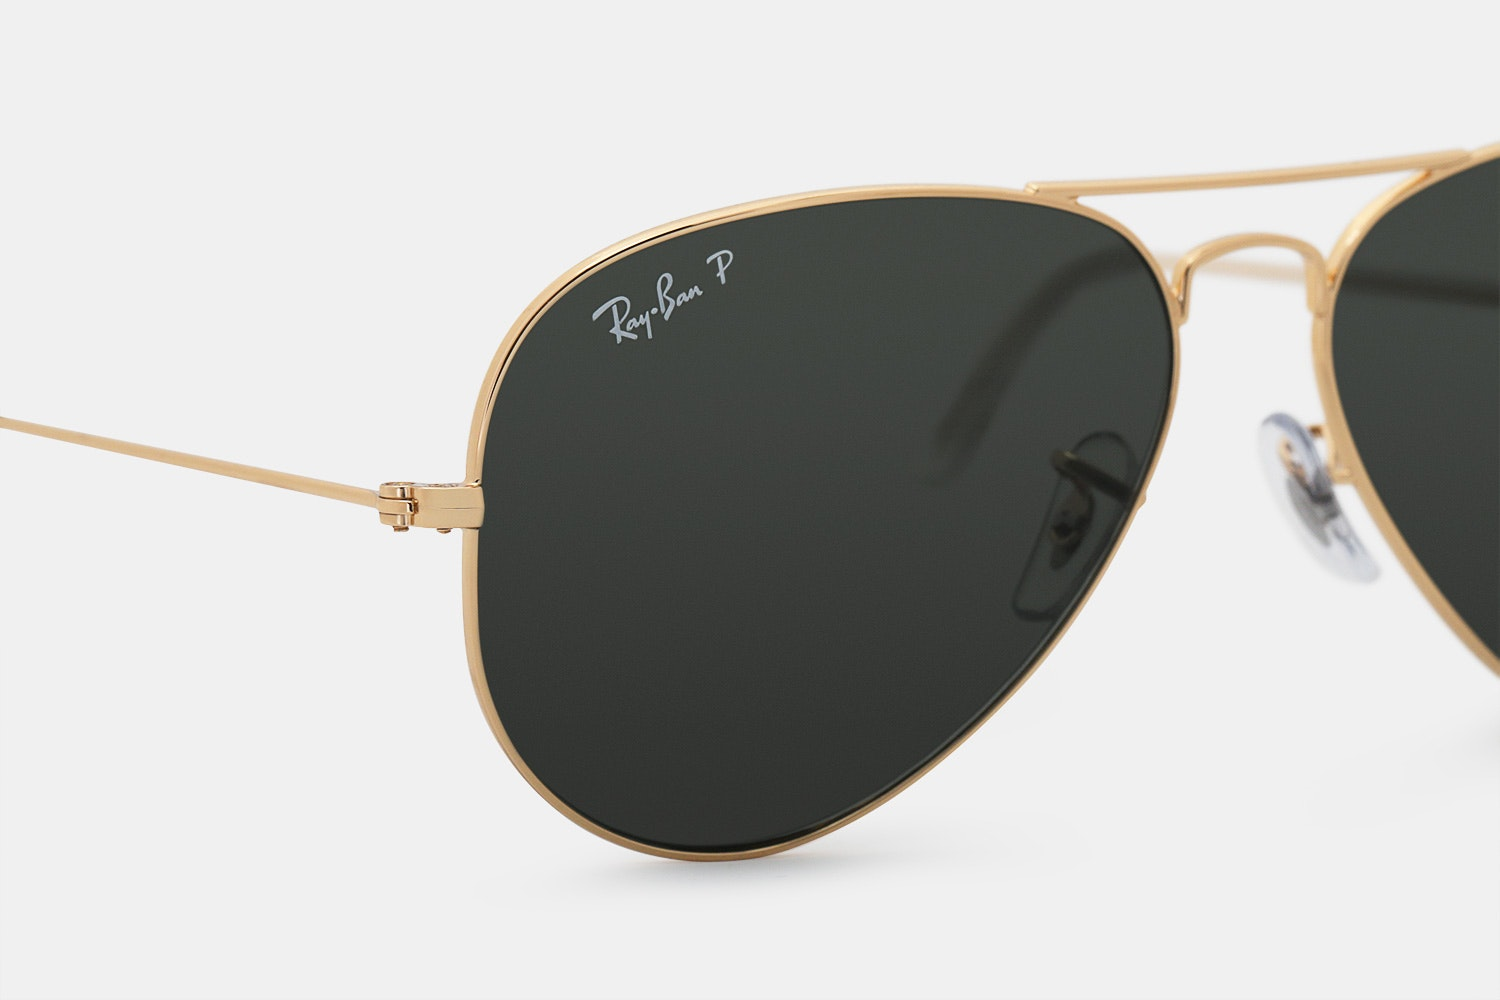 Ray-Ban Aviator Classic Sunglasses